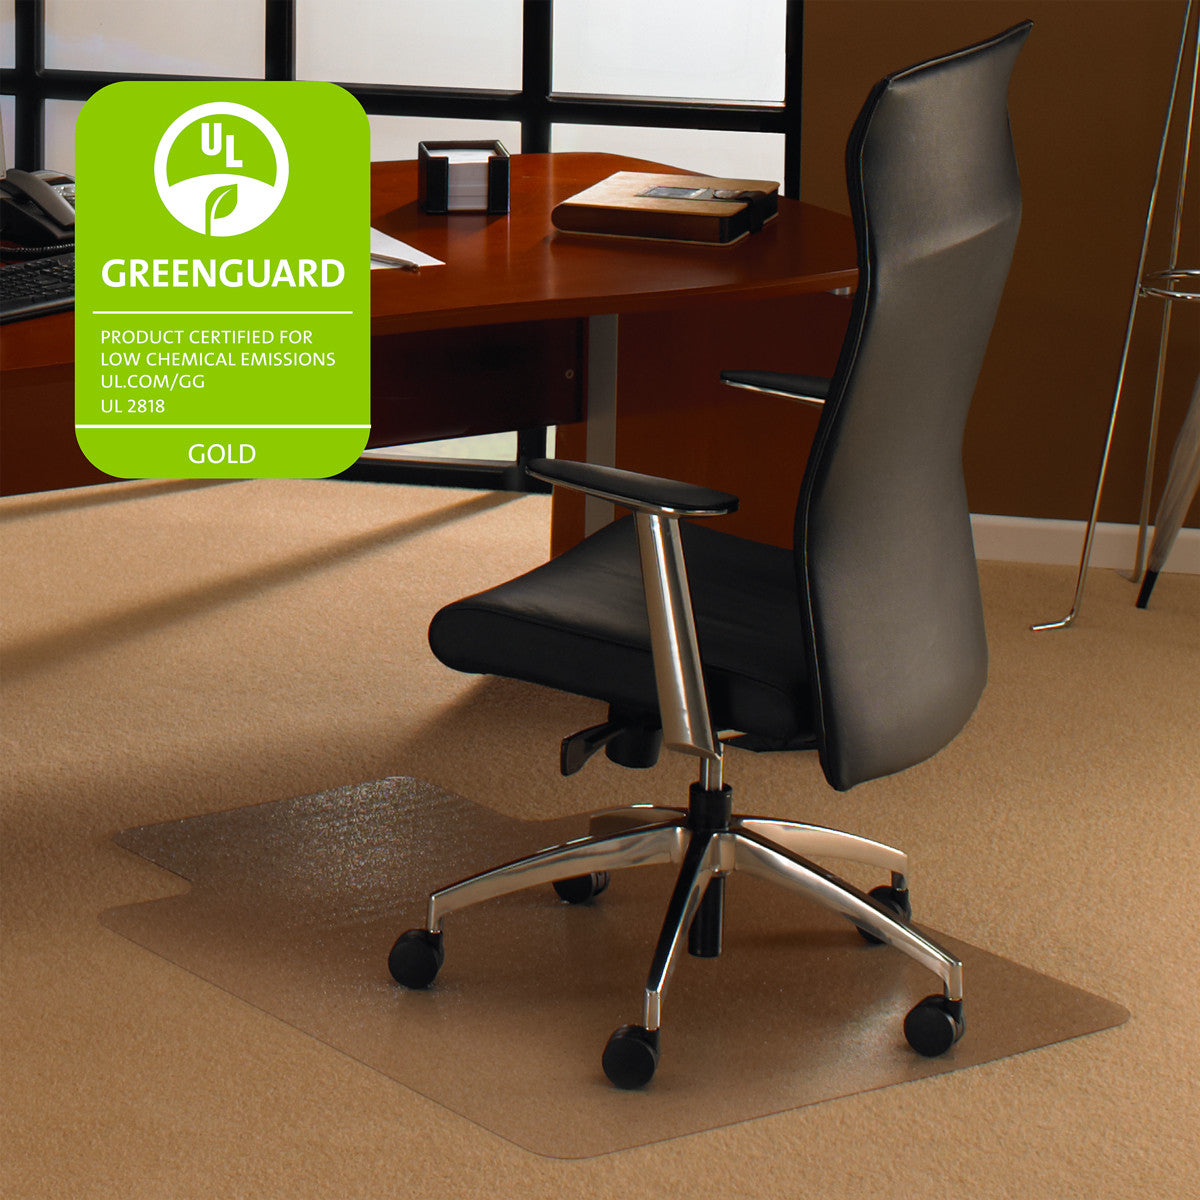 Cleartex Ultimat Polycarbonate Clear Chair mat for Low u0026 Medium Pile Carpets up to 1/ ... & Cleartex Ultimat Polycarbonate Clear Chair mat for Low u0026 Medium Pile ...